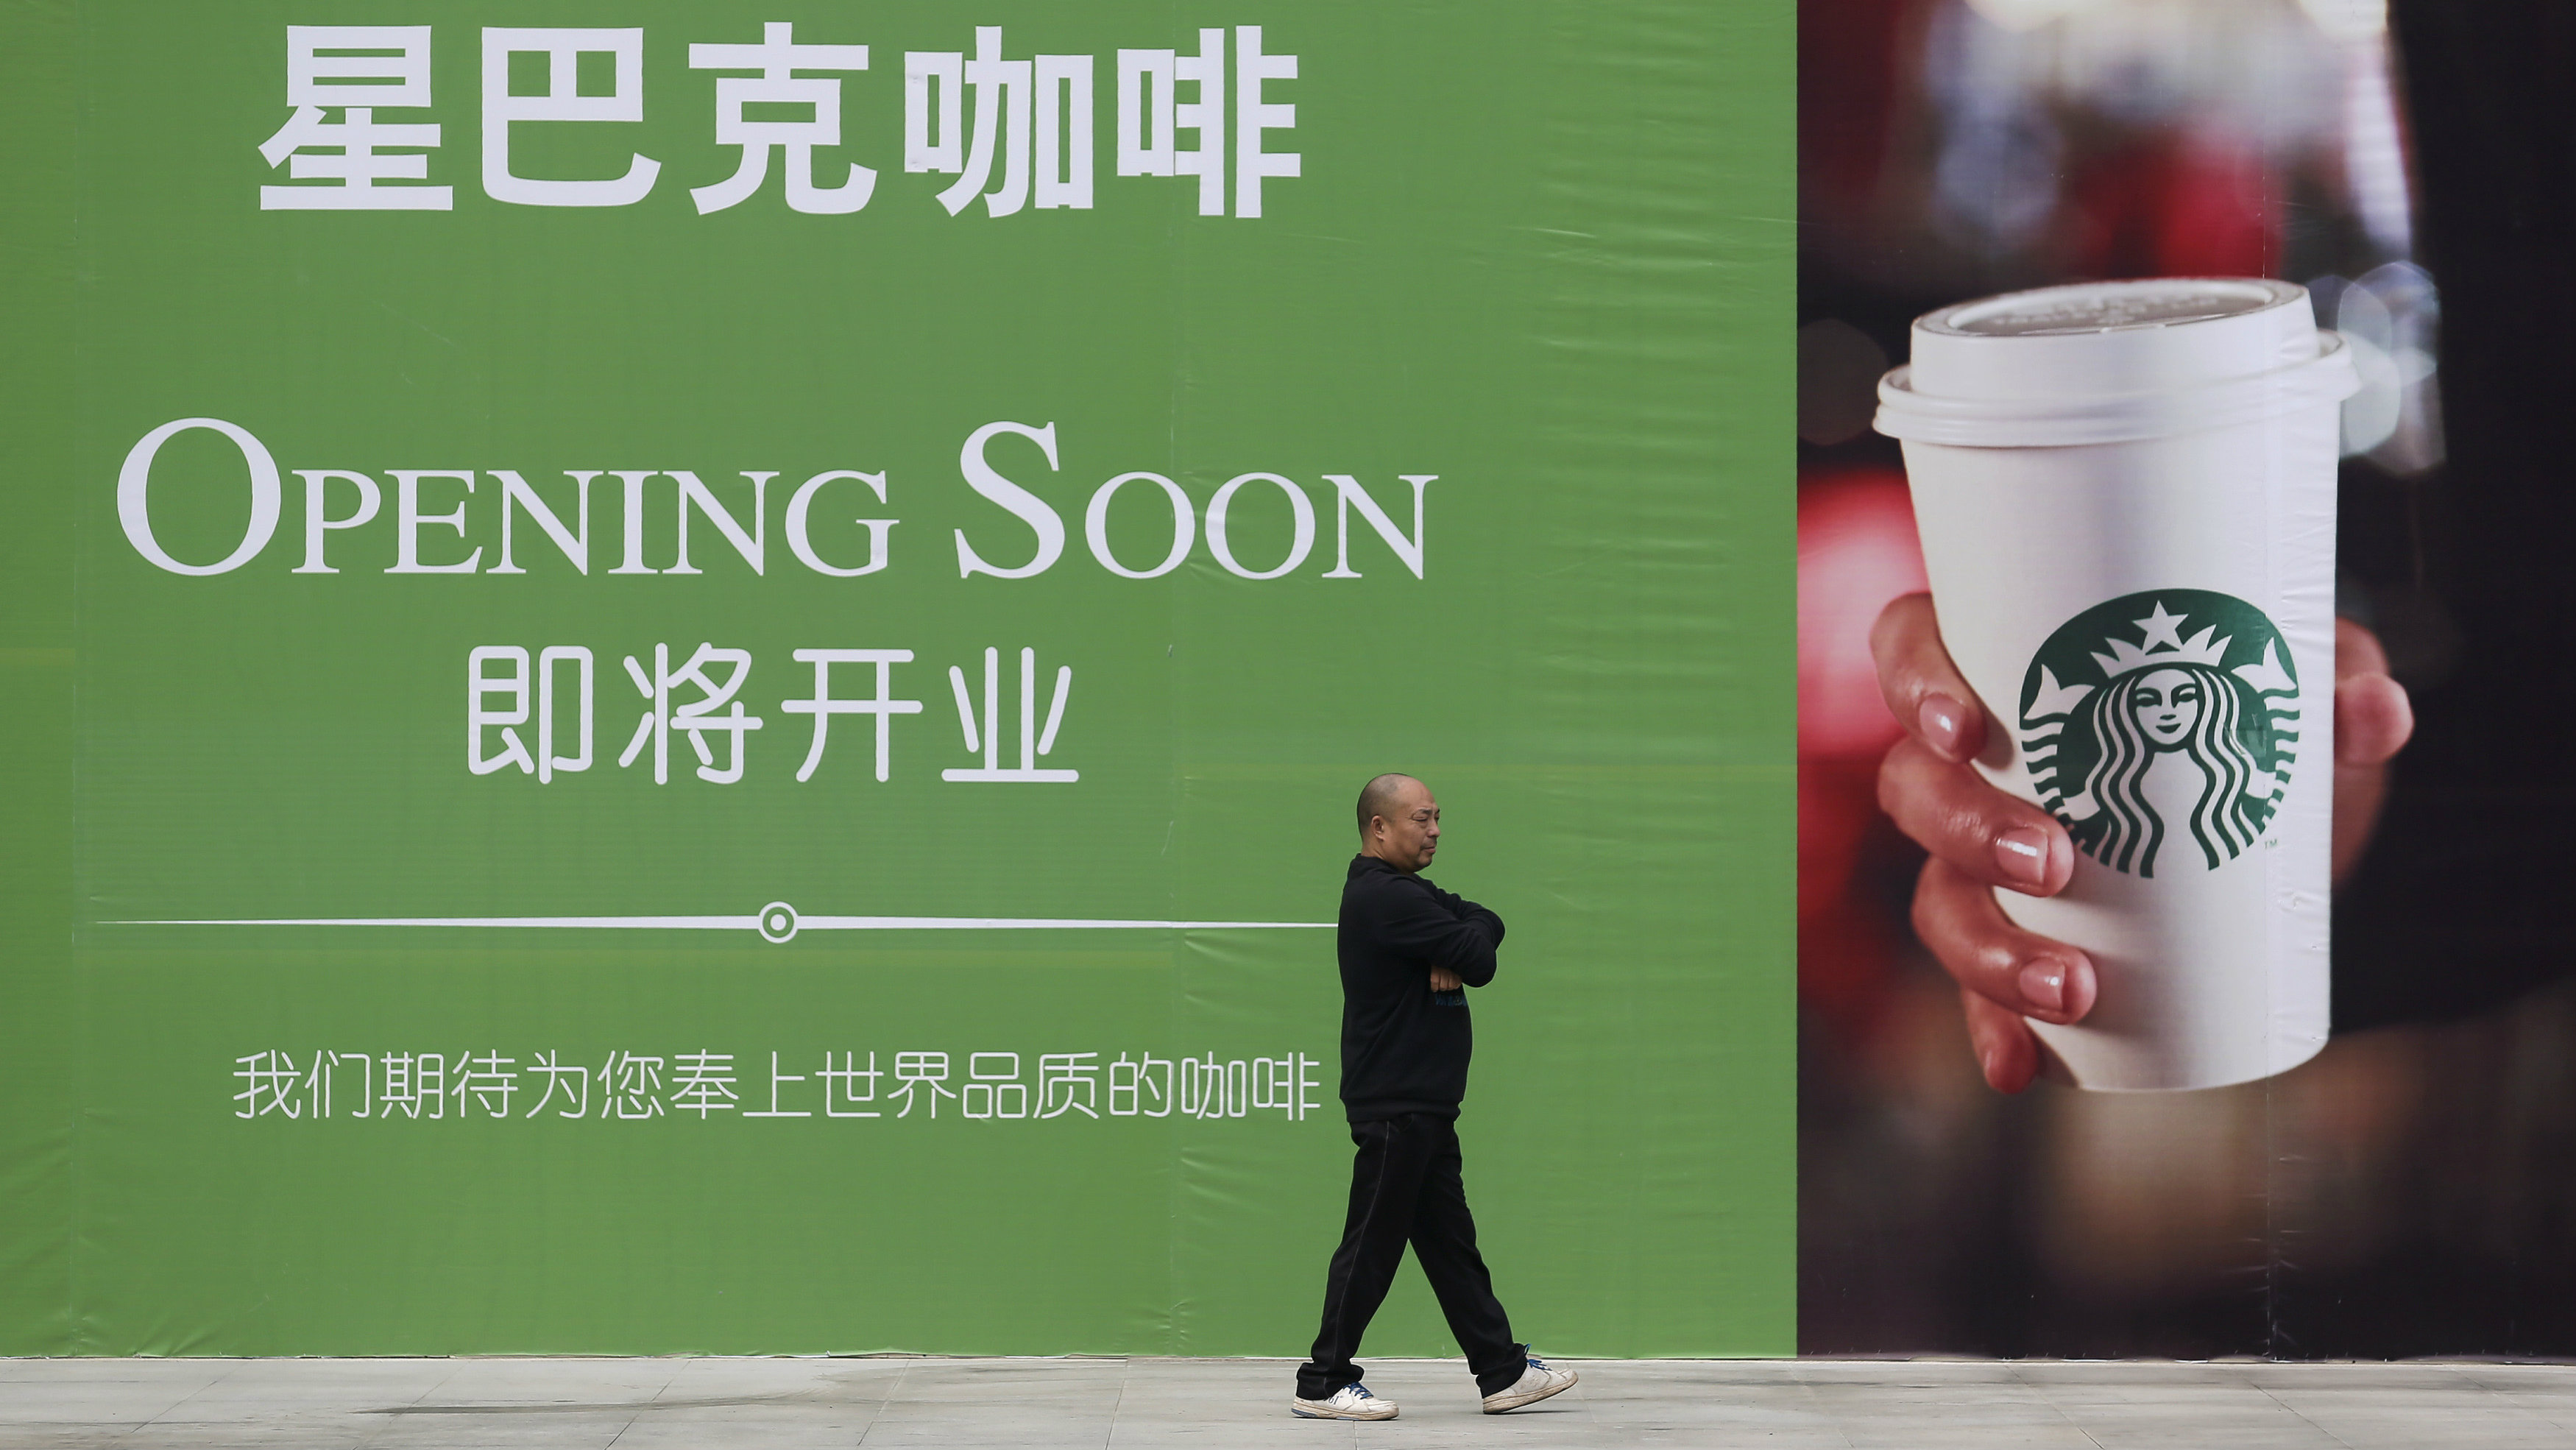 A man walks past an advertisement board of Starbucks in Wuhan, Hubei province, in this October 29, 2013 file photo. A China state television investigative report accusing Starbucks of overcharging local customers for coffee triggered enormous disquiet among journalists at the network and even some soul-searching after it aired. December 16, 2013